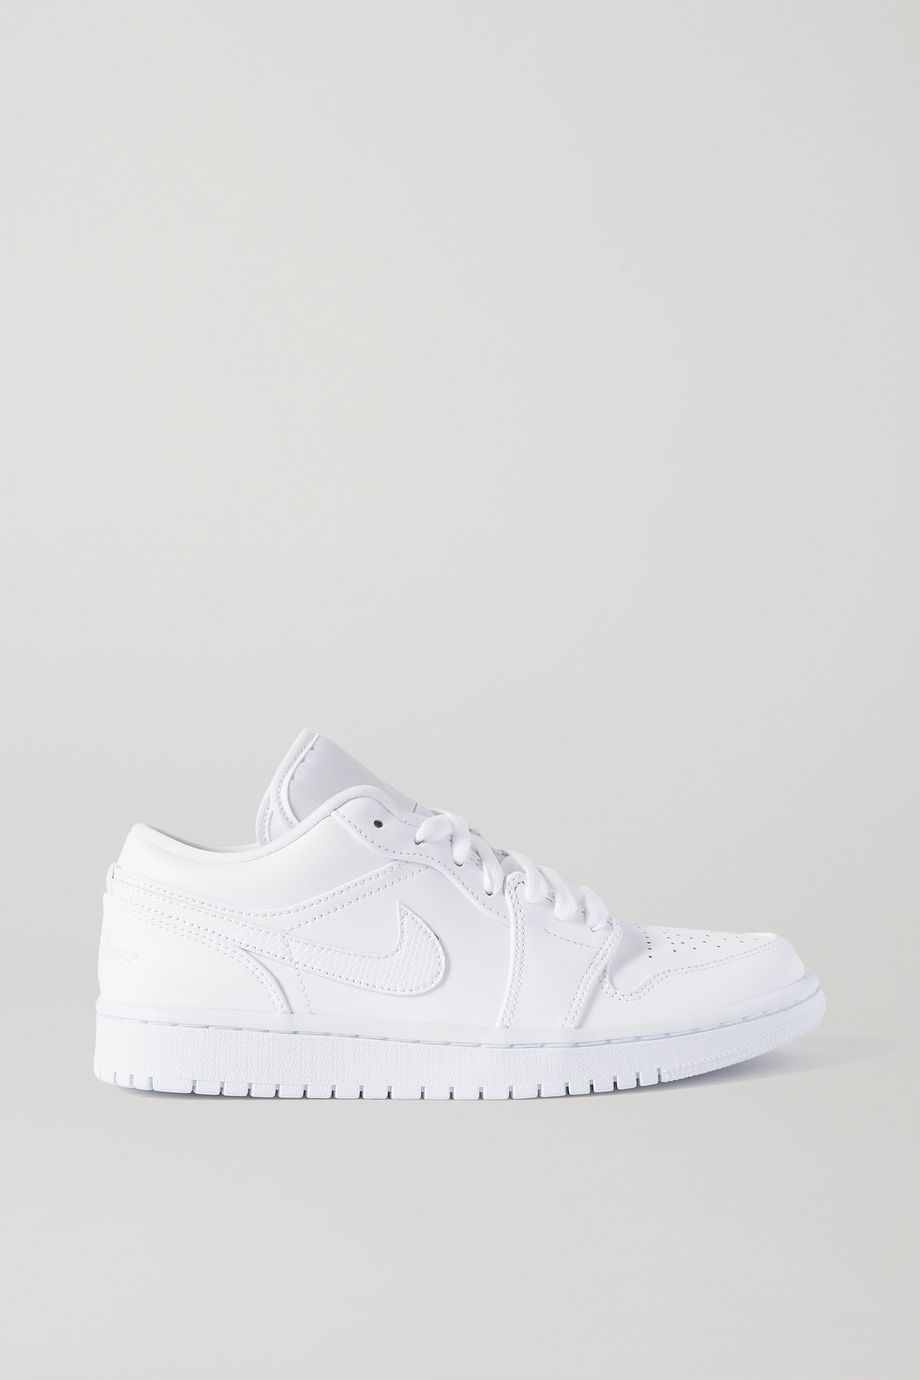 Nike Air Jordan 1 Low leather sneakers